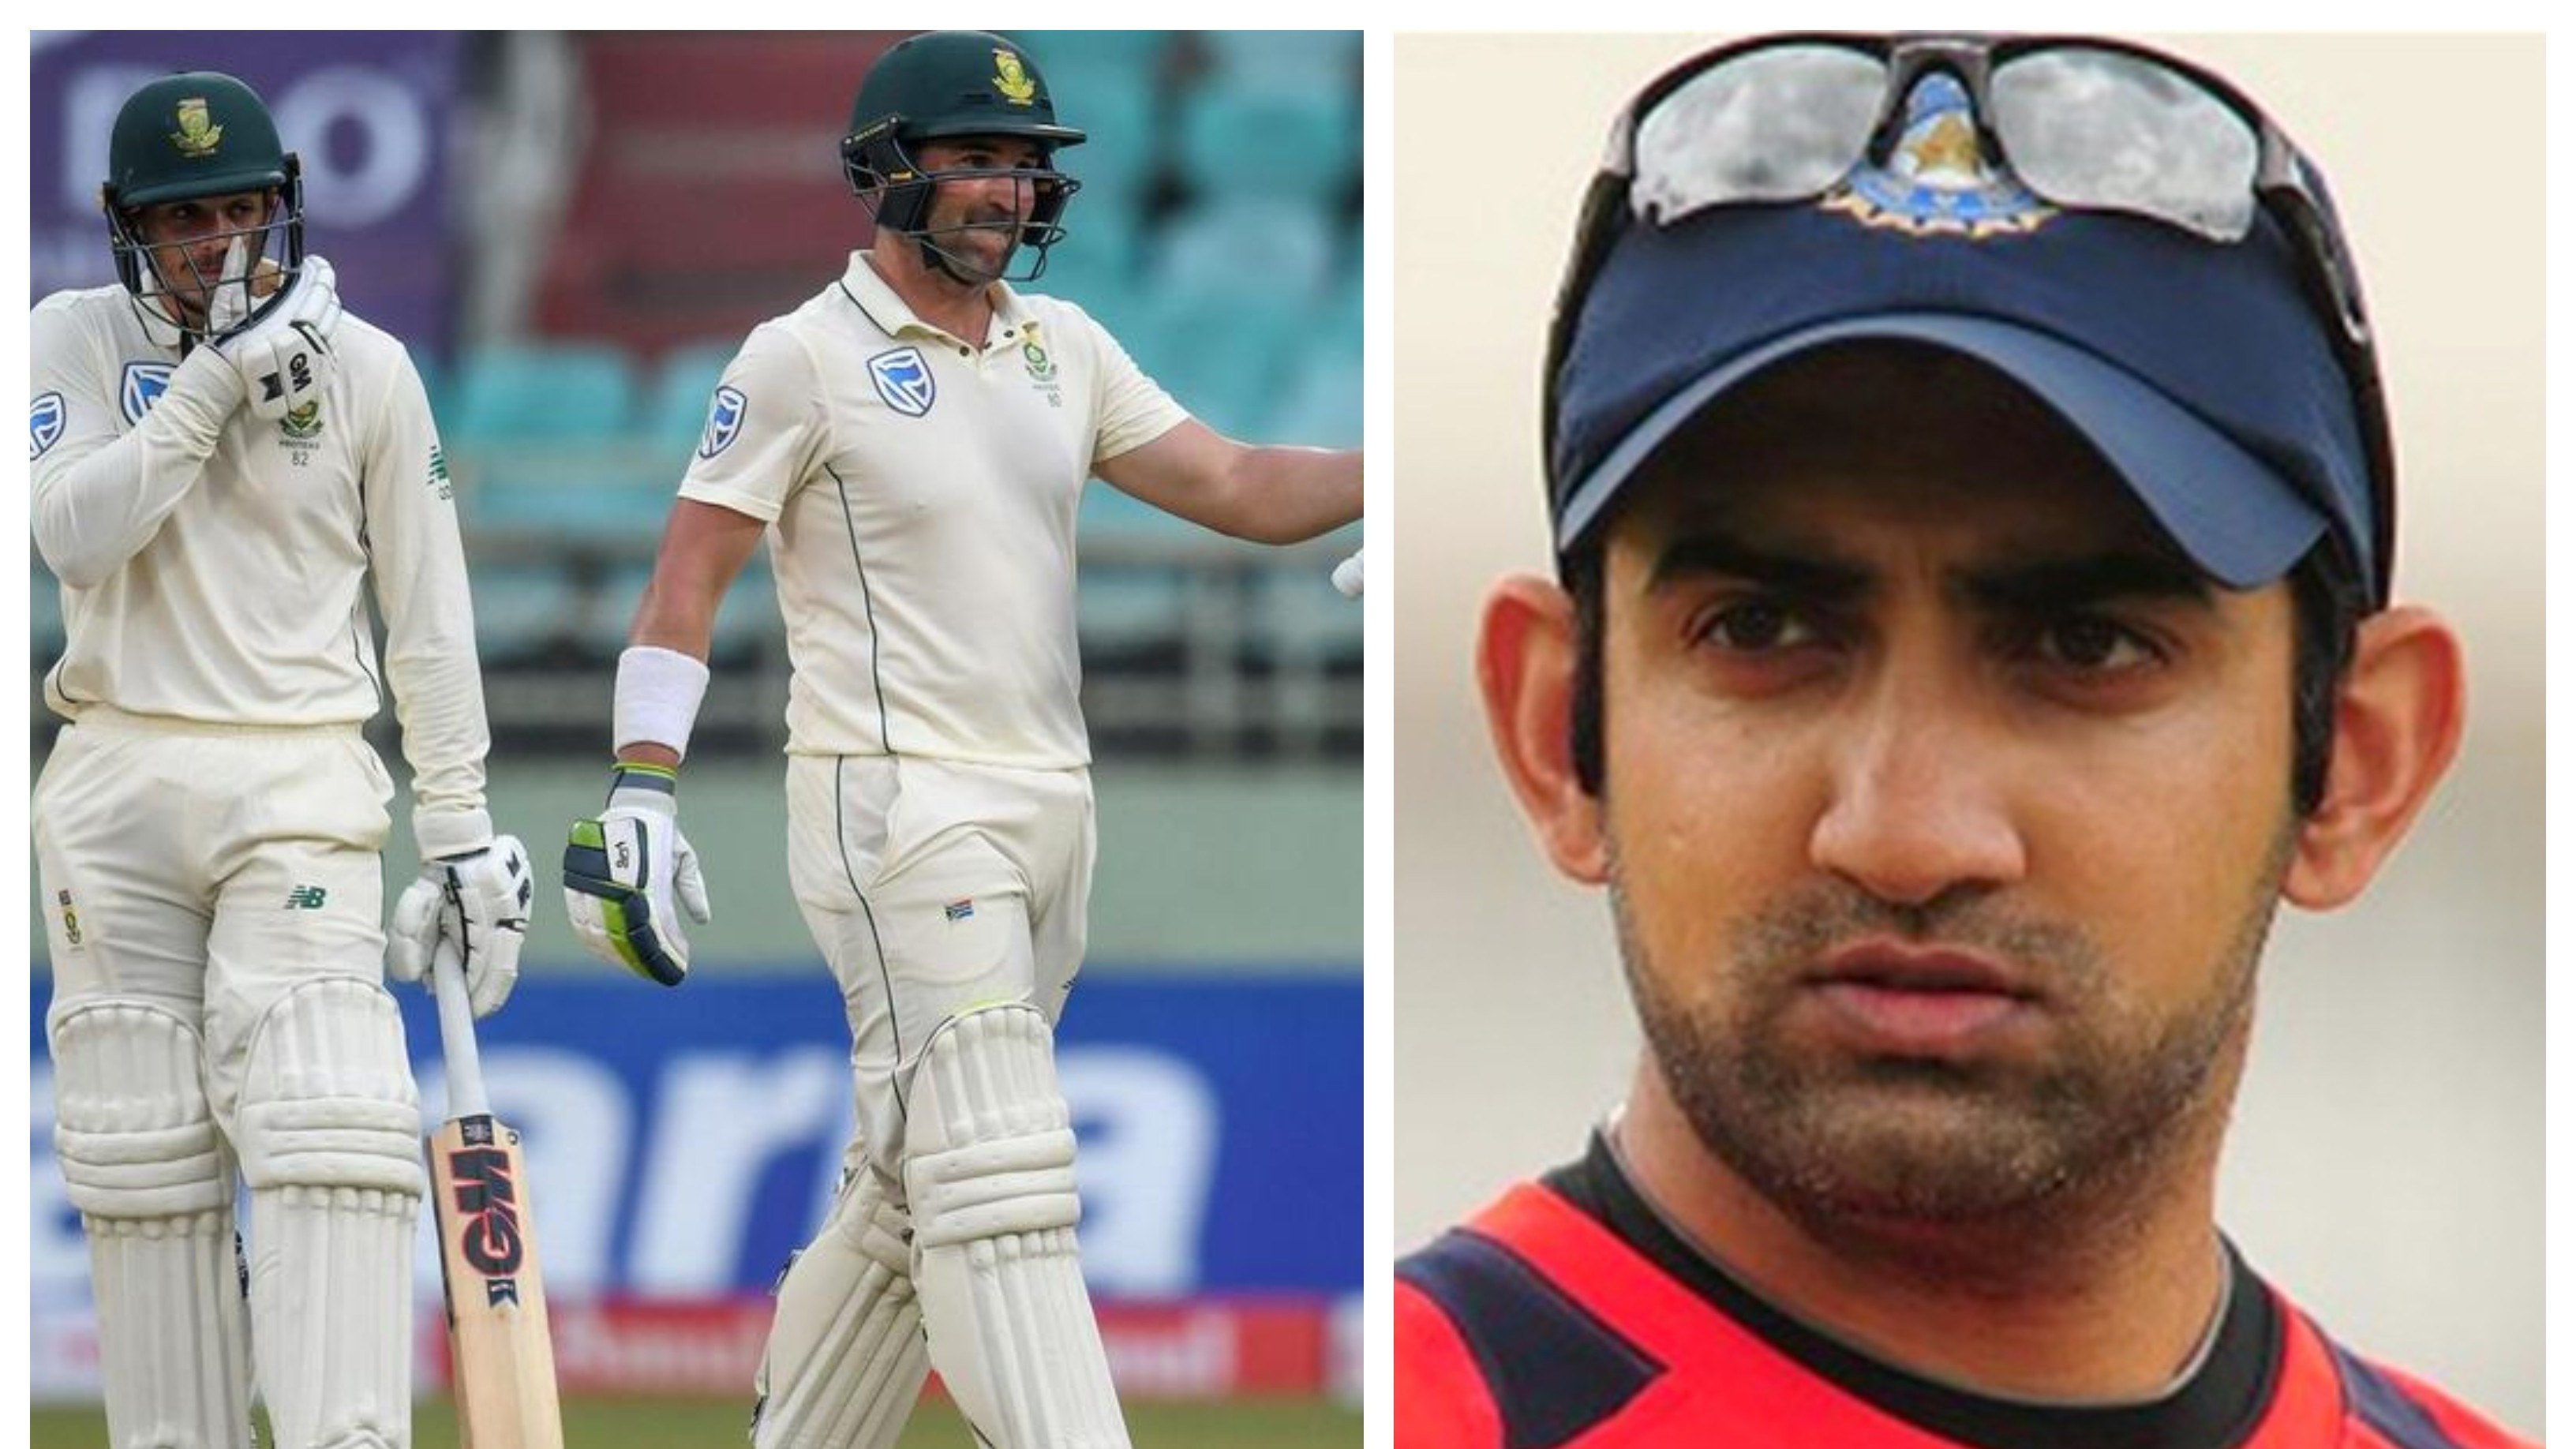 IND v SA 2019: Red soil on Pune Pitch will make life difficult for Proteas batsmen, reckons Gambhir